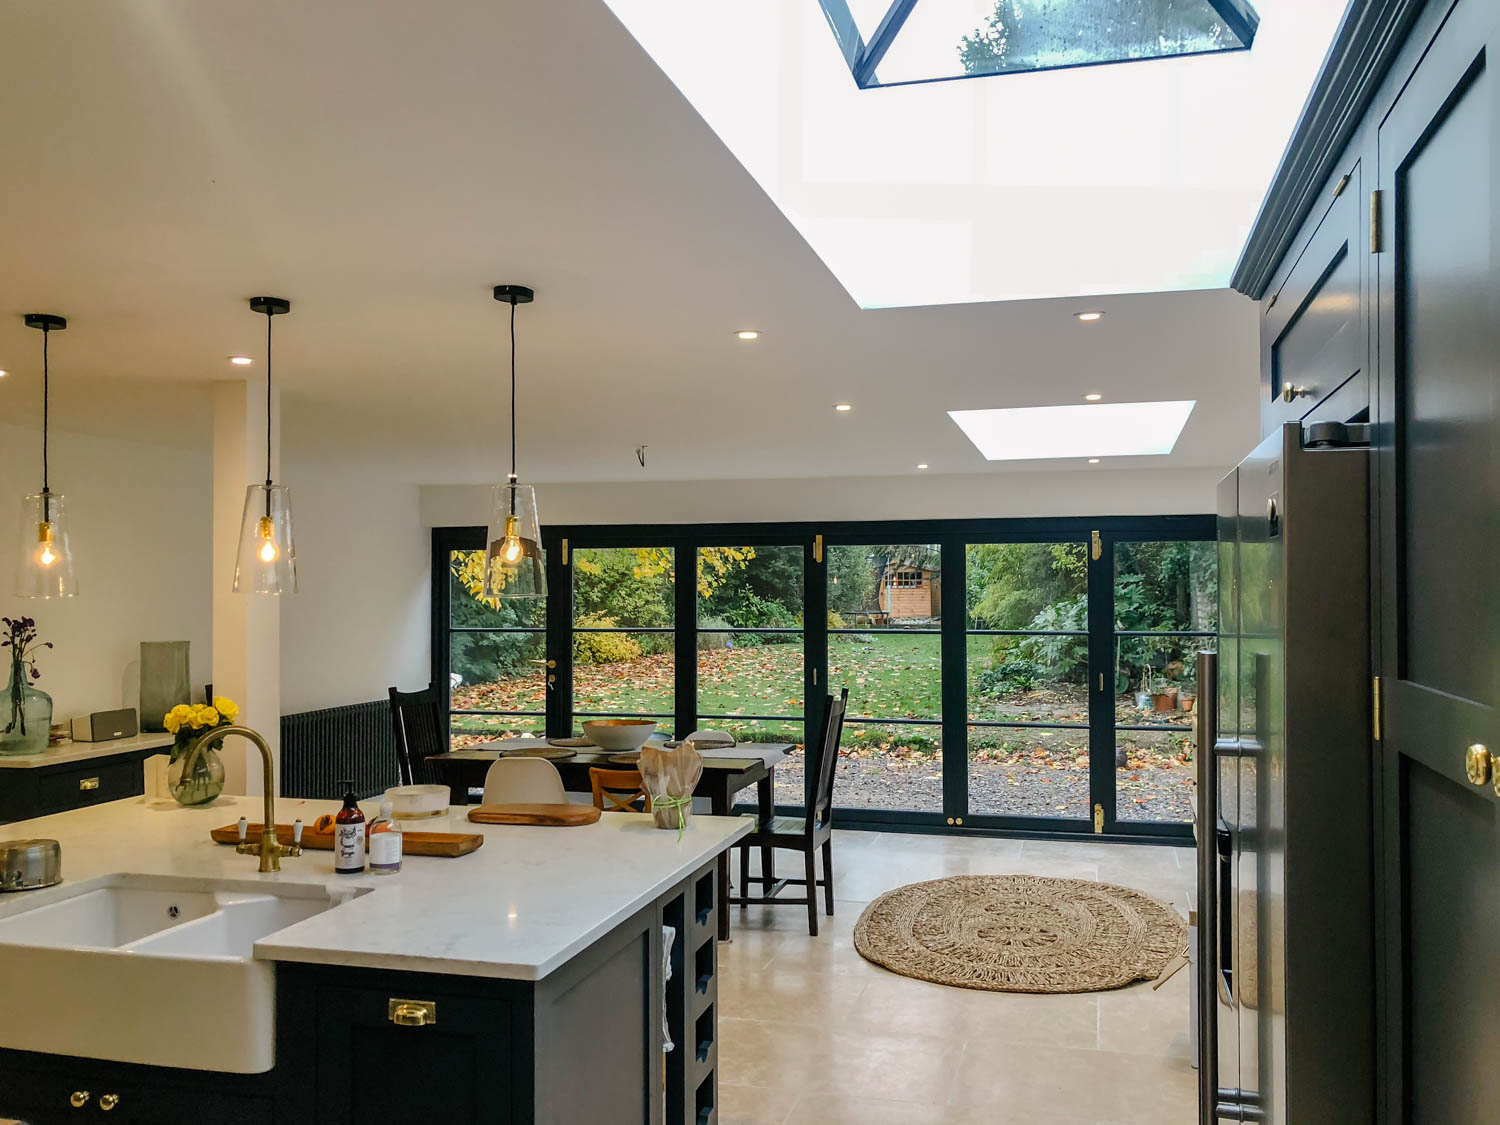 Henley Building services specialising extension and renovation specialists